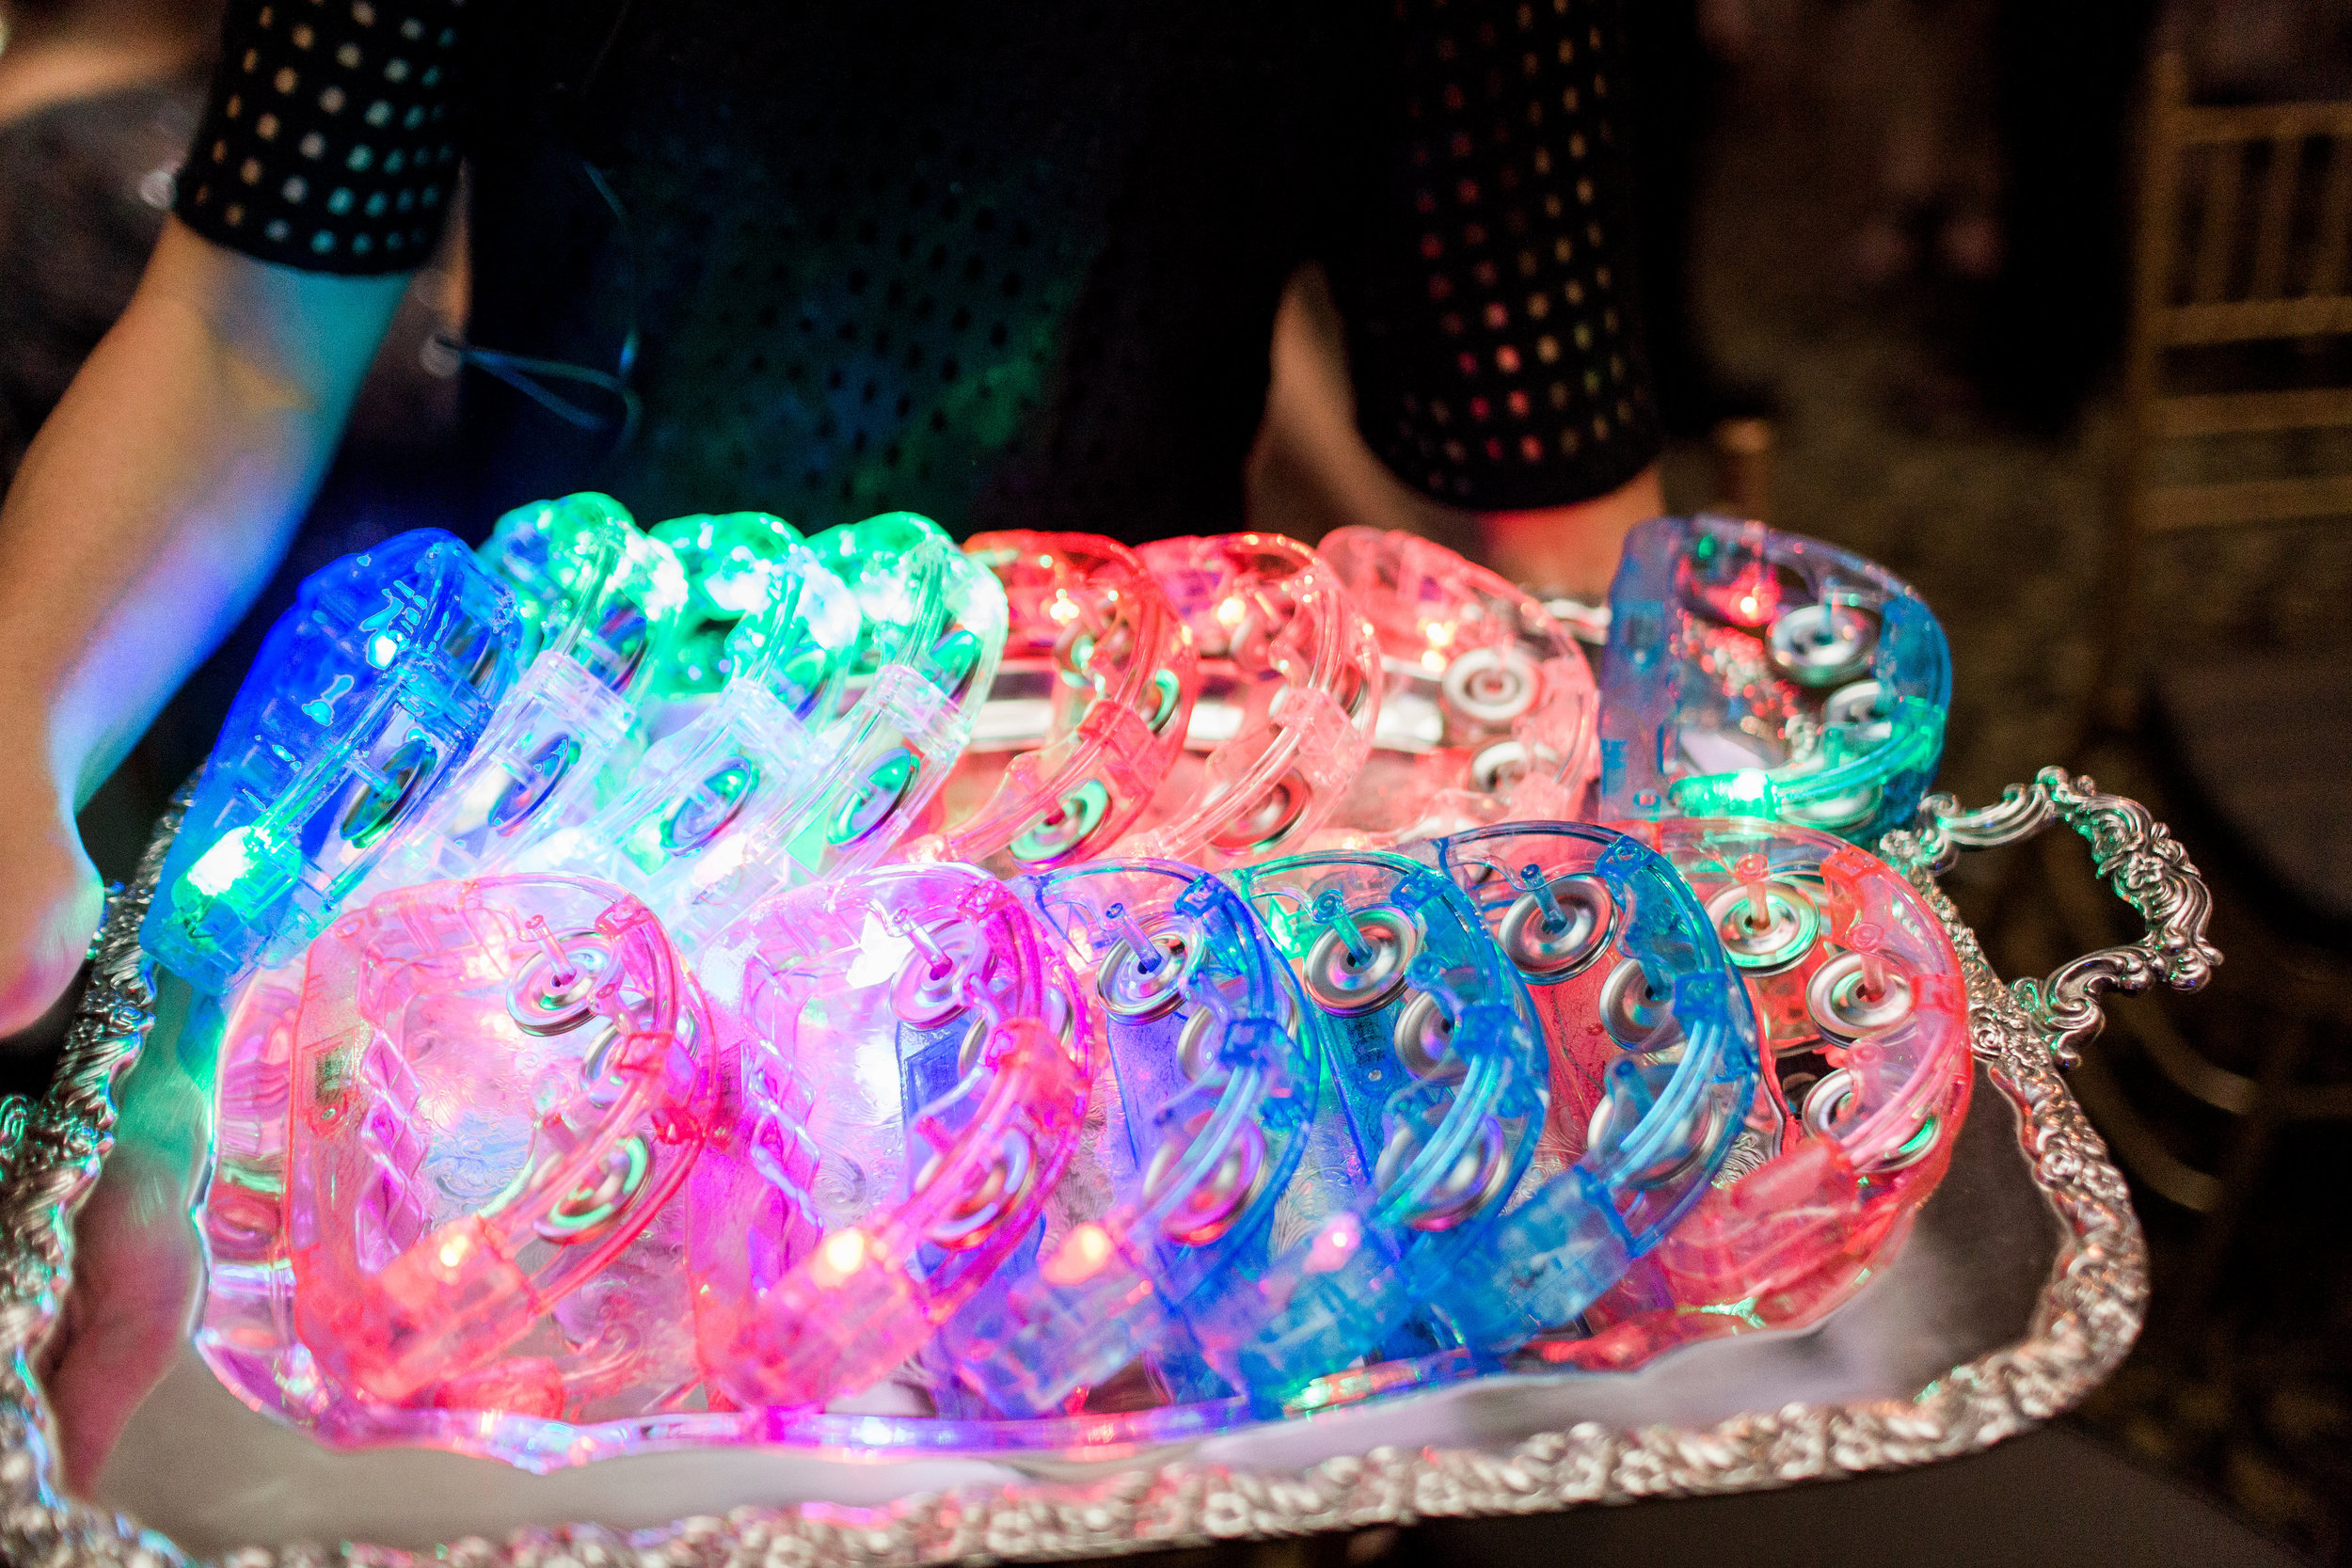 Guests loved having this light up tambourines on the dance floor. They were brought out on silver trays too!